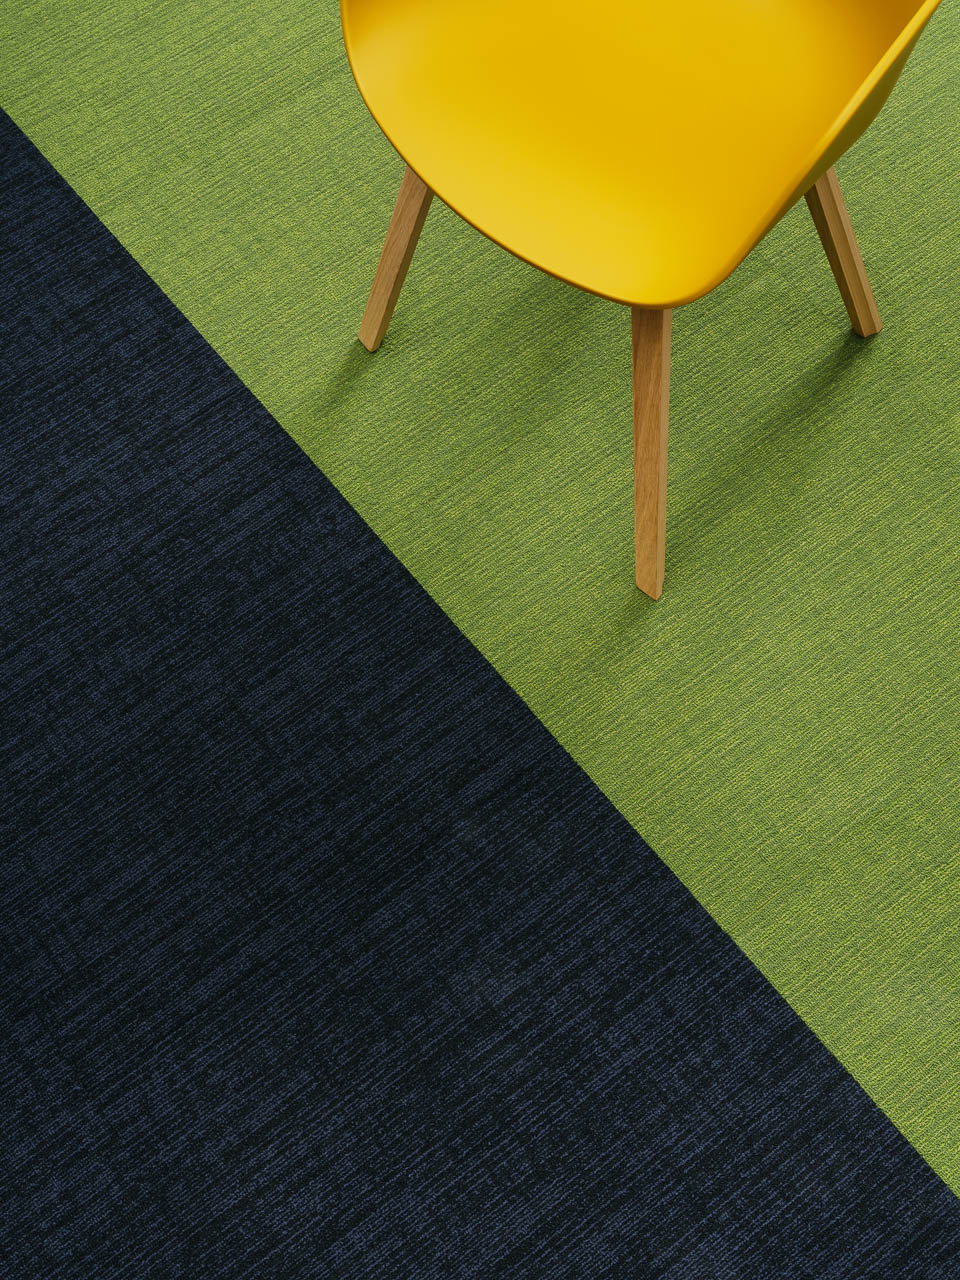 Amtico Colour Anchor Meadow und Twinkle in der Brick Verlegemethode.